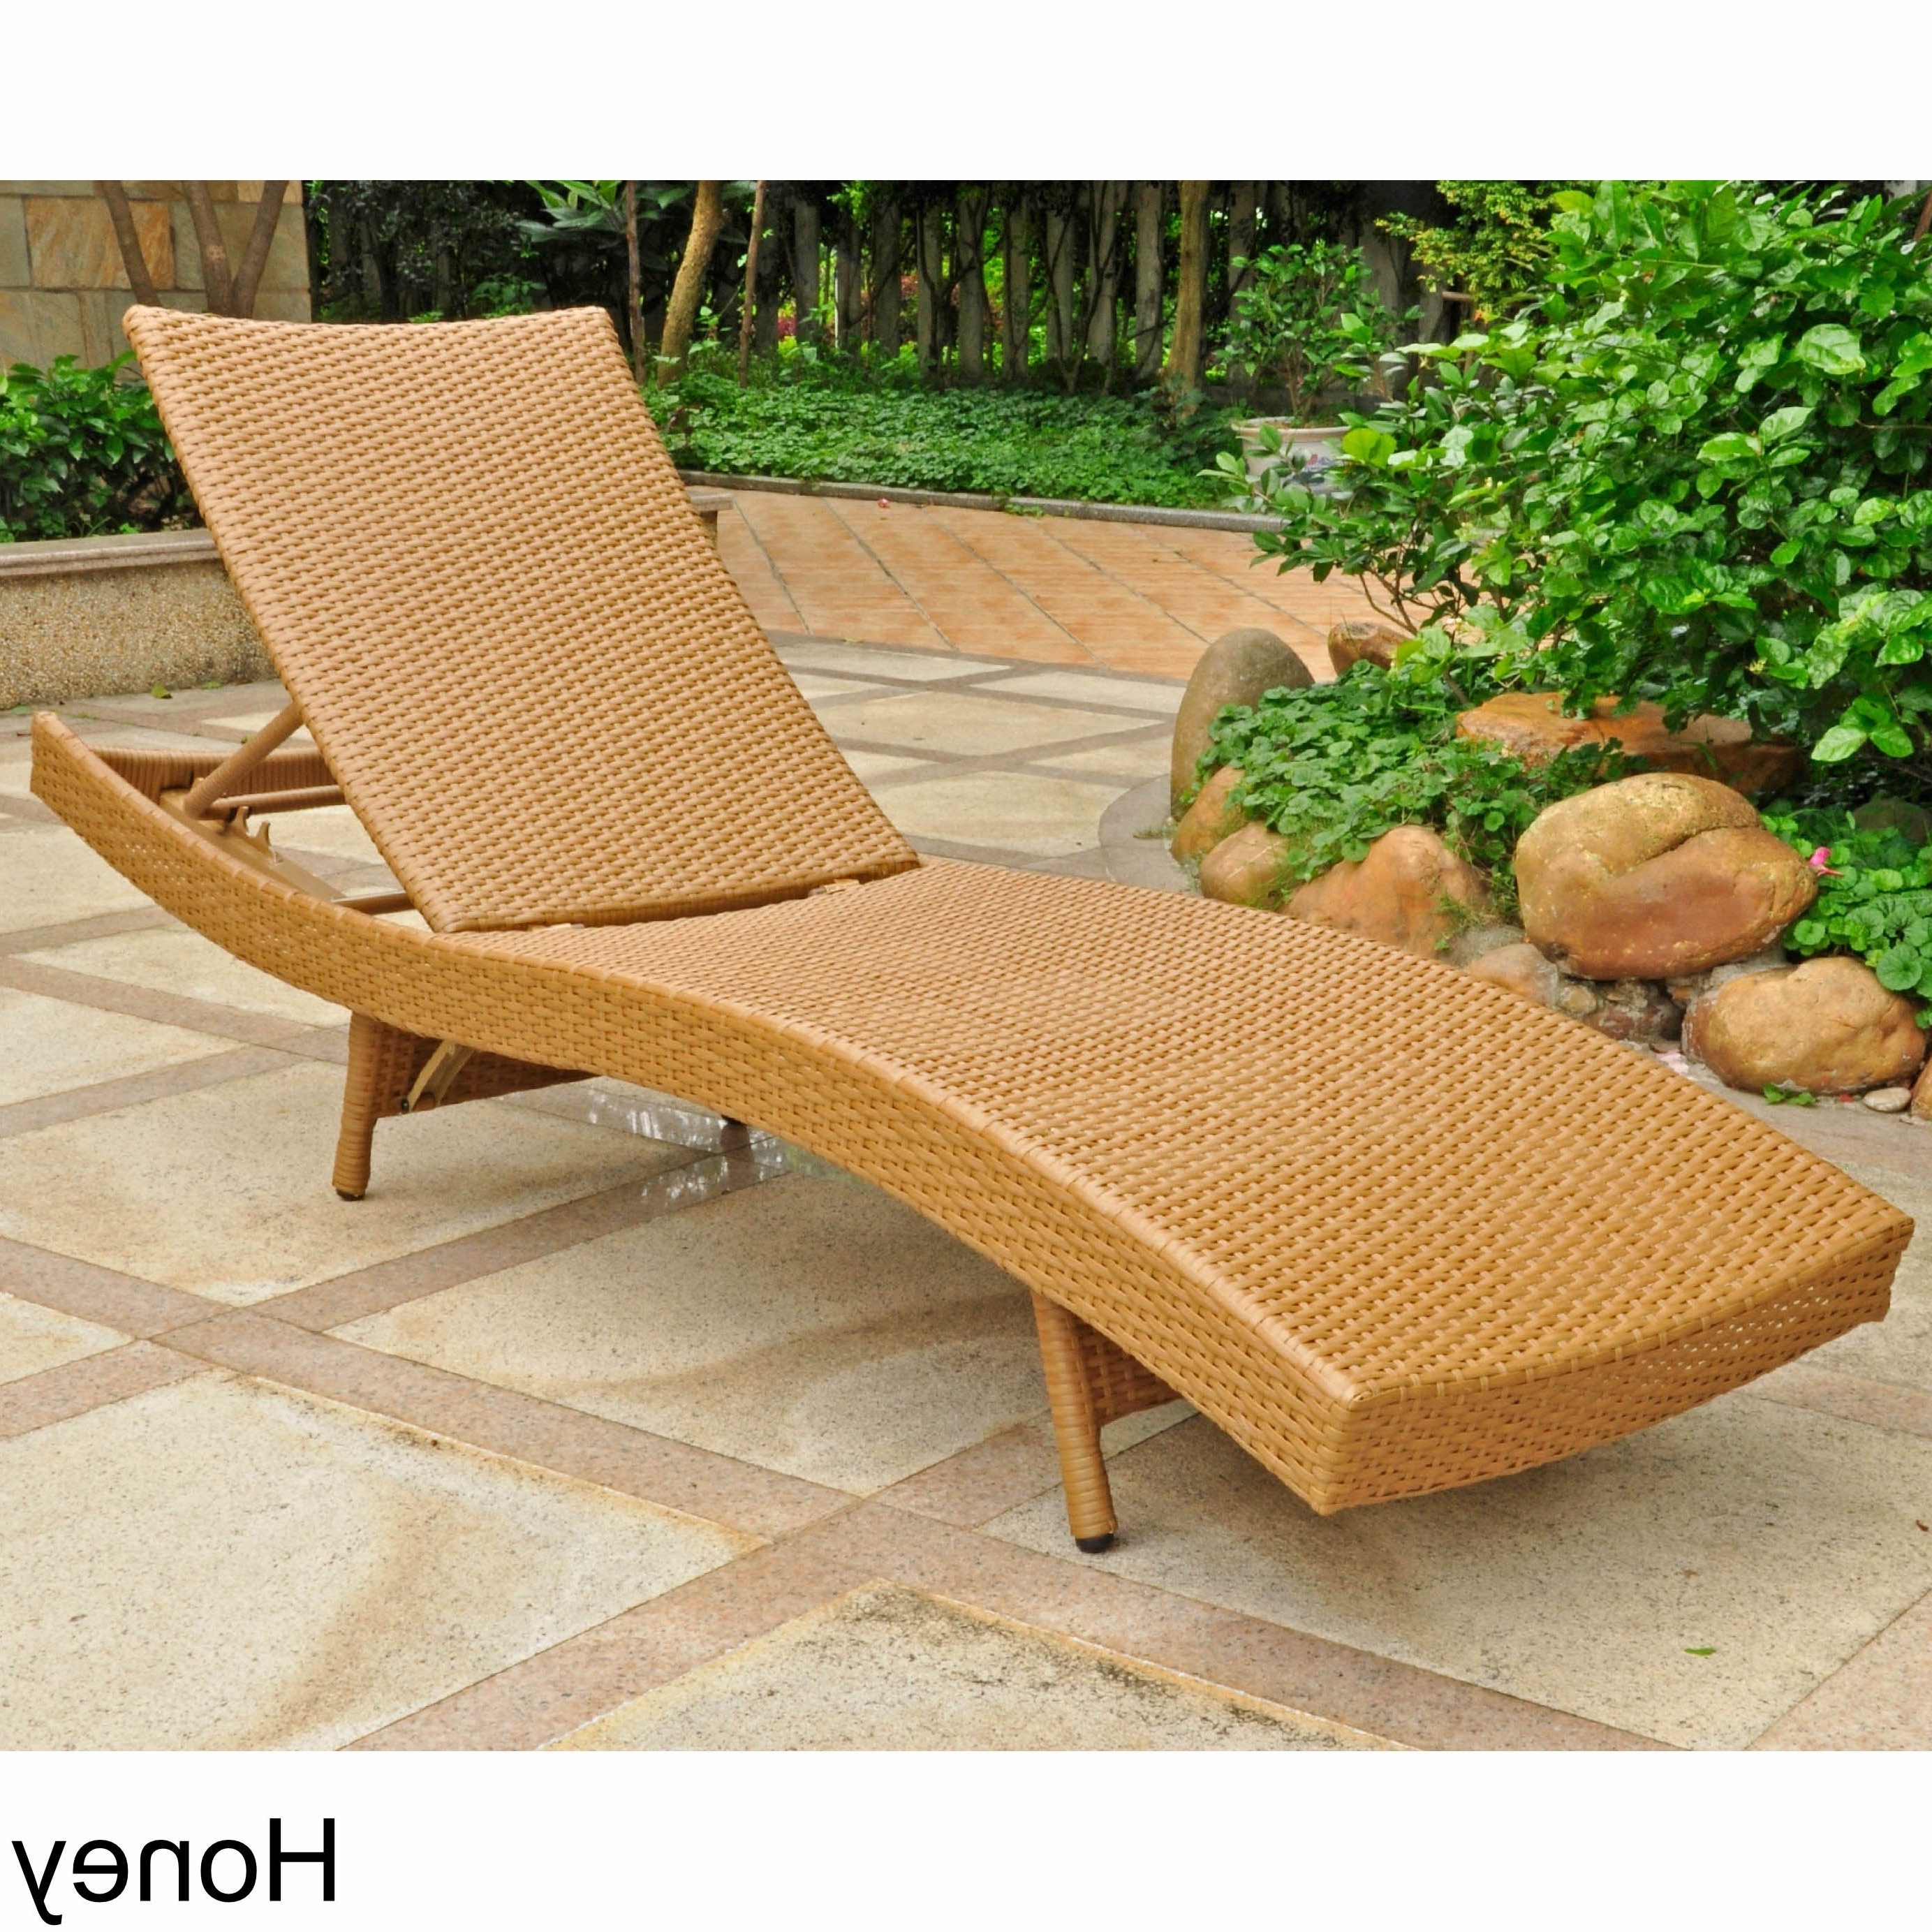 Best And Newest Resin Wicker Aluminum Multi Position Chaise Lounges Throughout International Caravan Barcelona Resin Wicker/aluminum Outdoor  Multi Position Chaise Lounge (View 4 of 25)